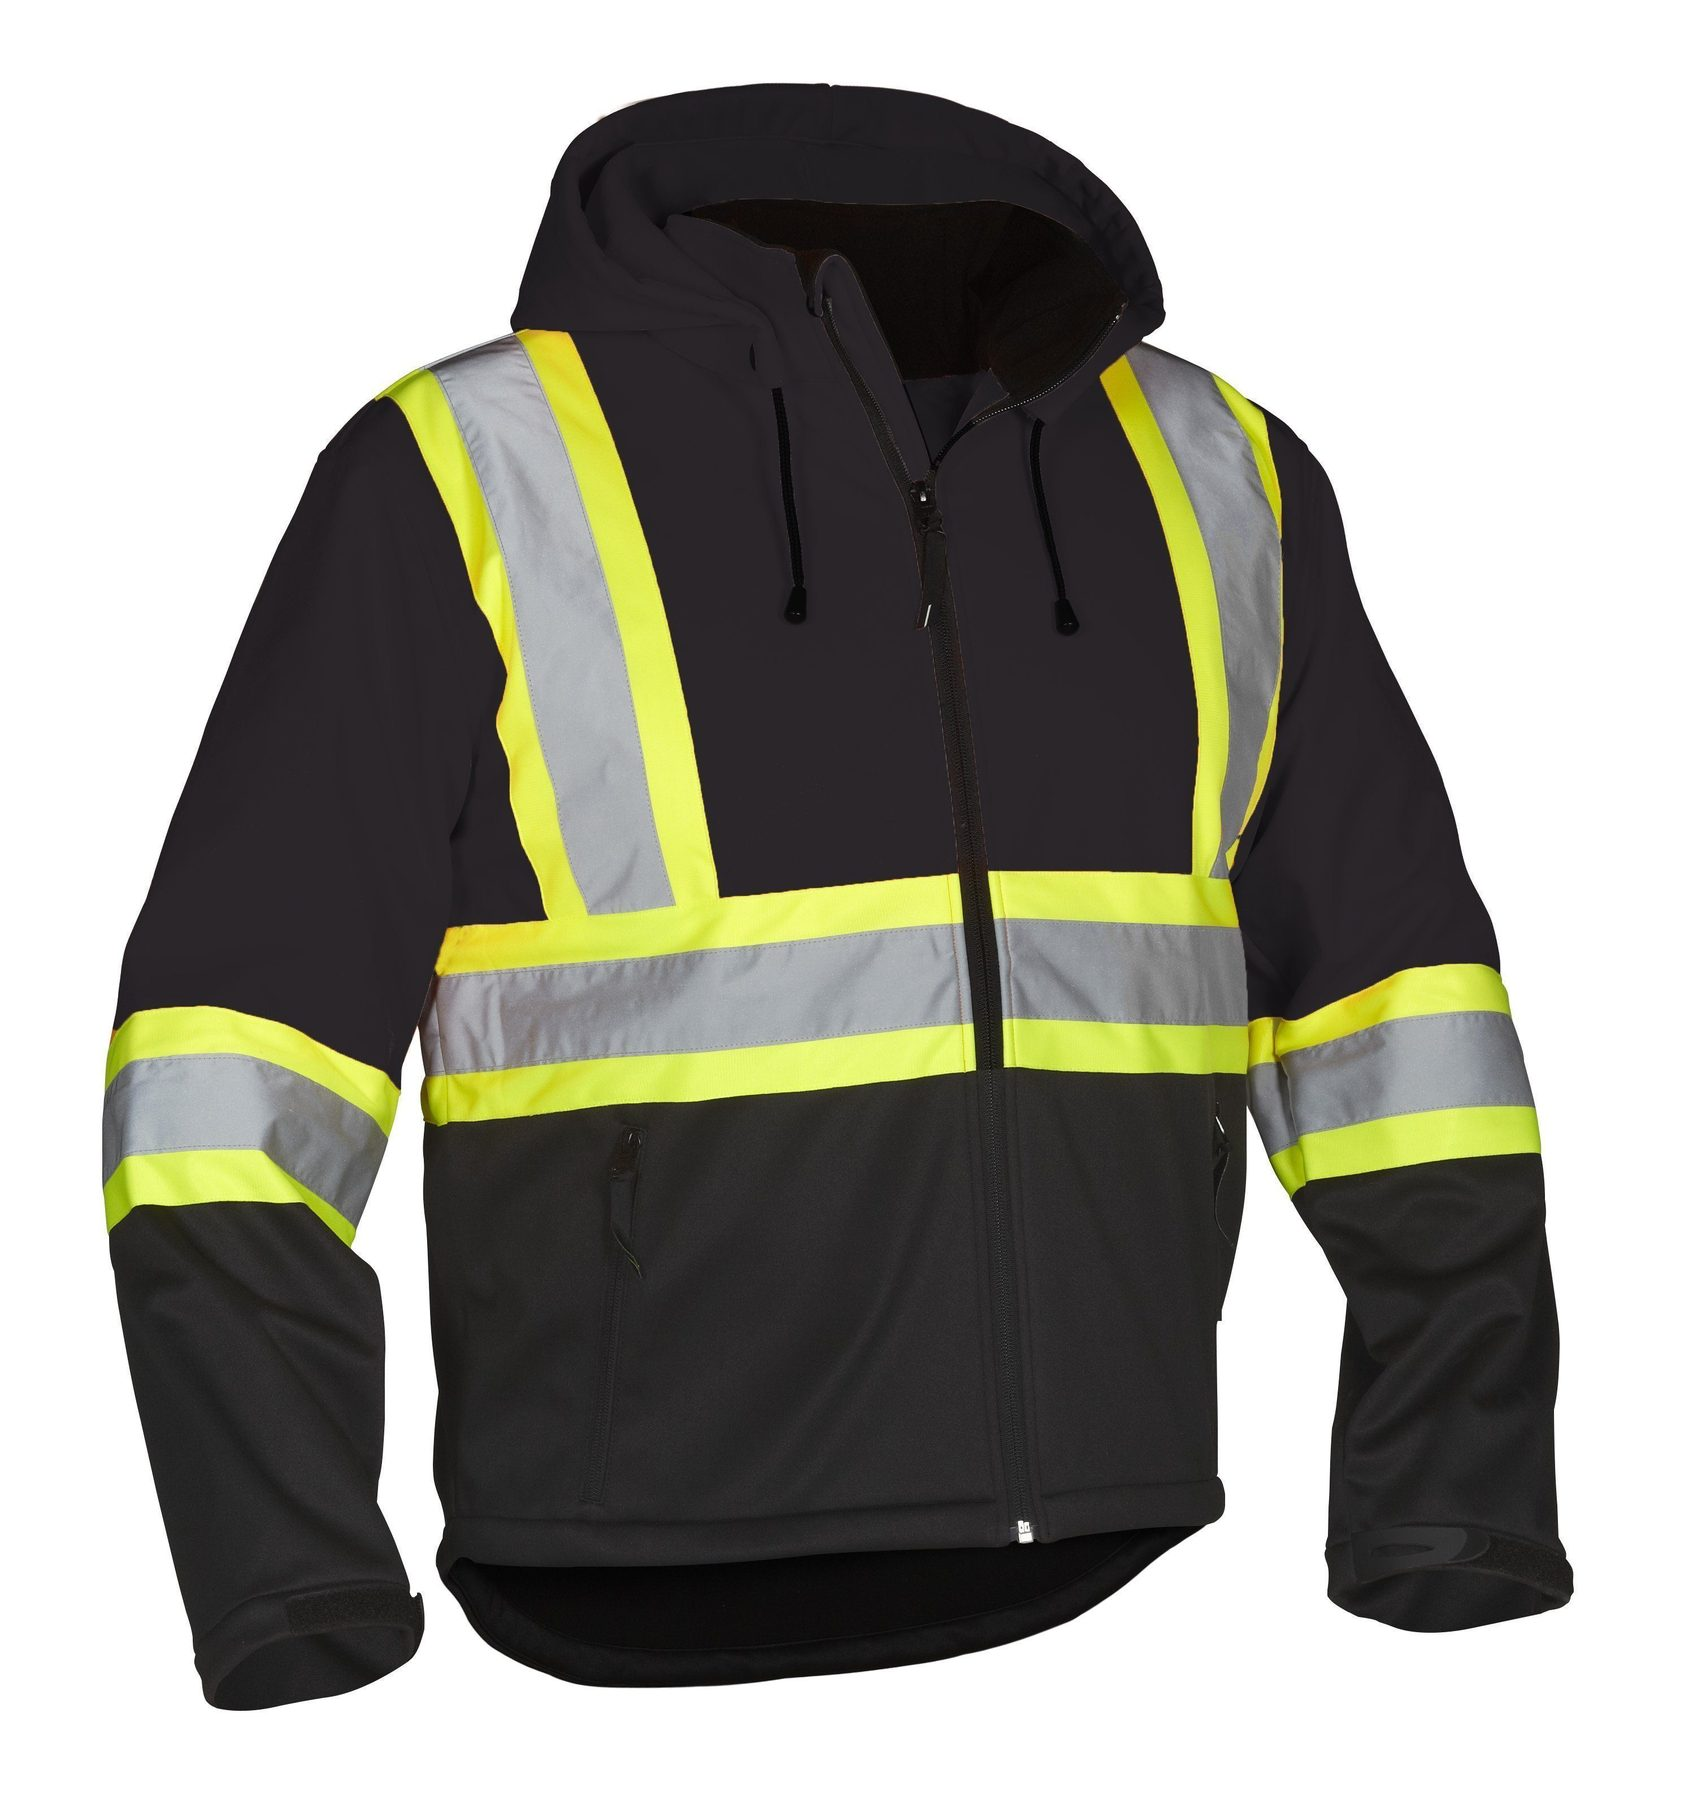 Forcefield Hi-Vis Safety Softshell w detach hood 023-EN148BK